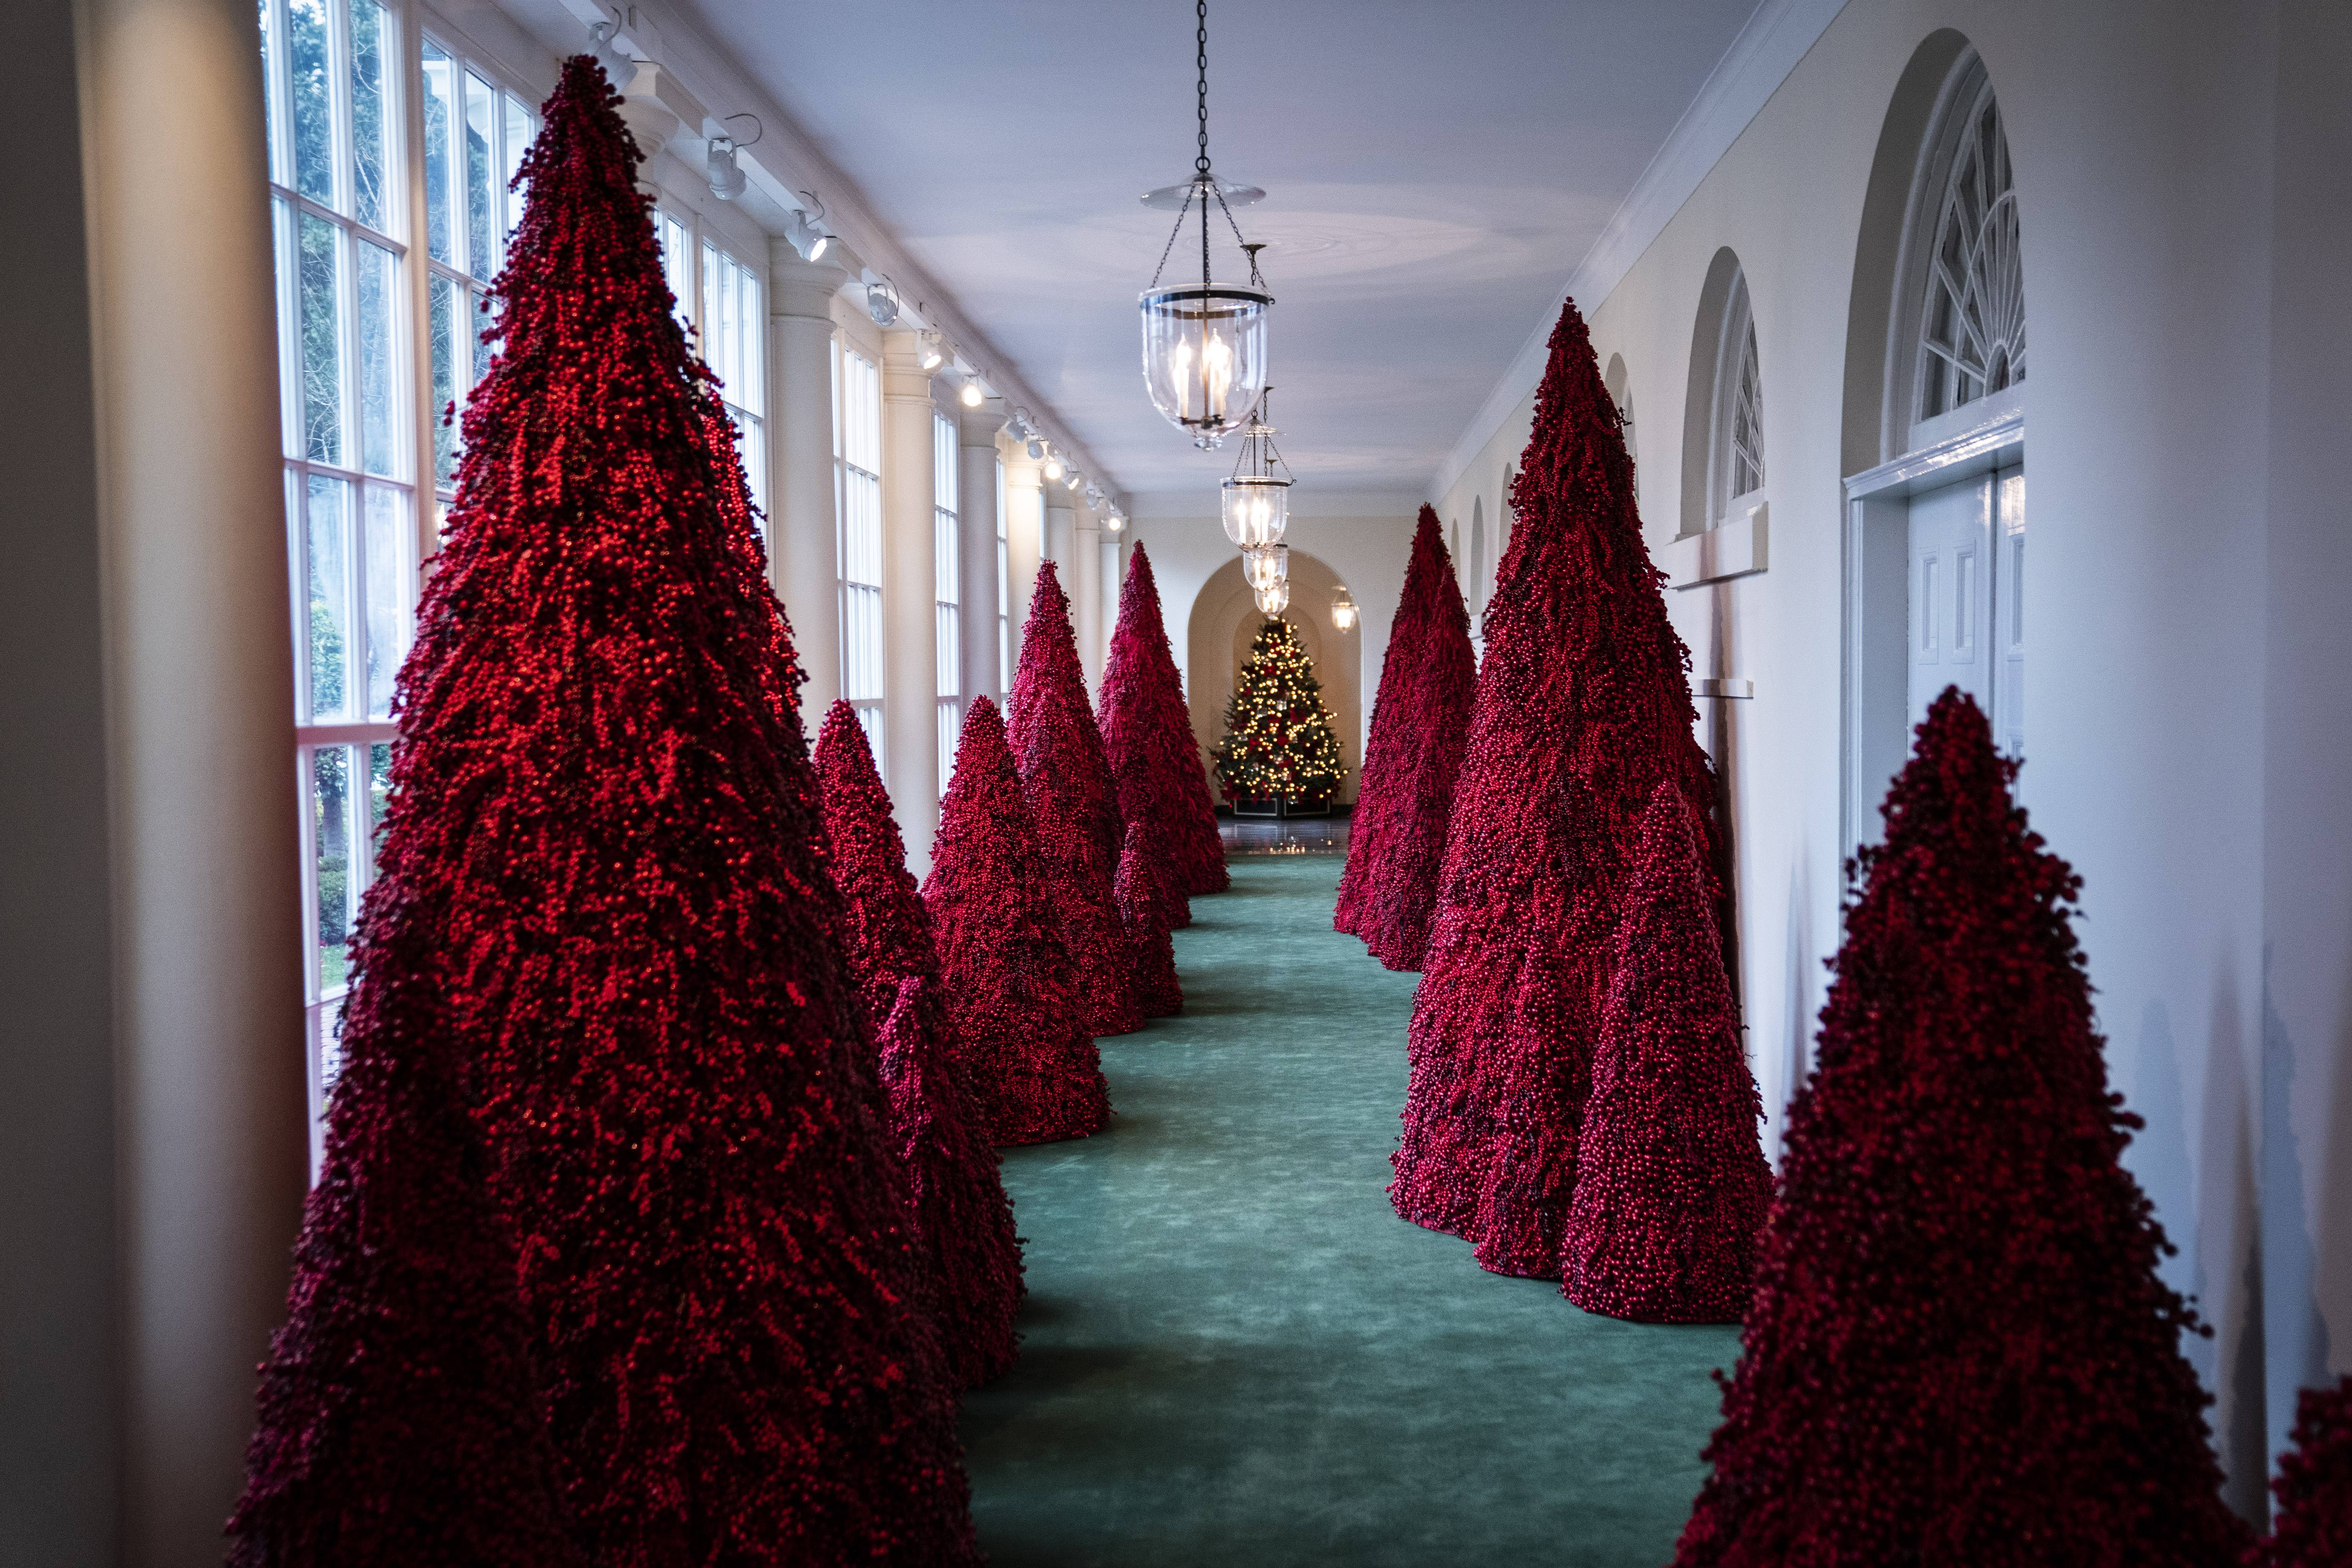 Melania Trump Skips Unveiling Of White House Holiday Decorations To